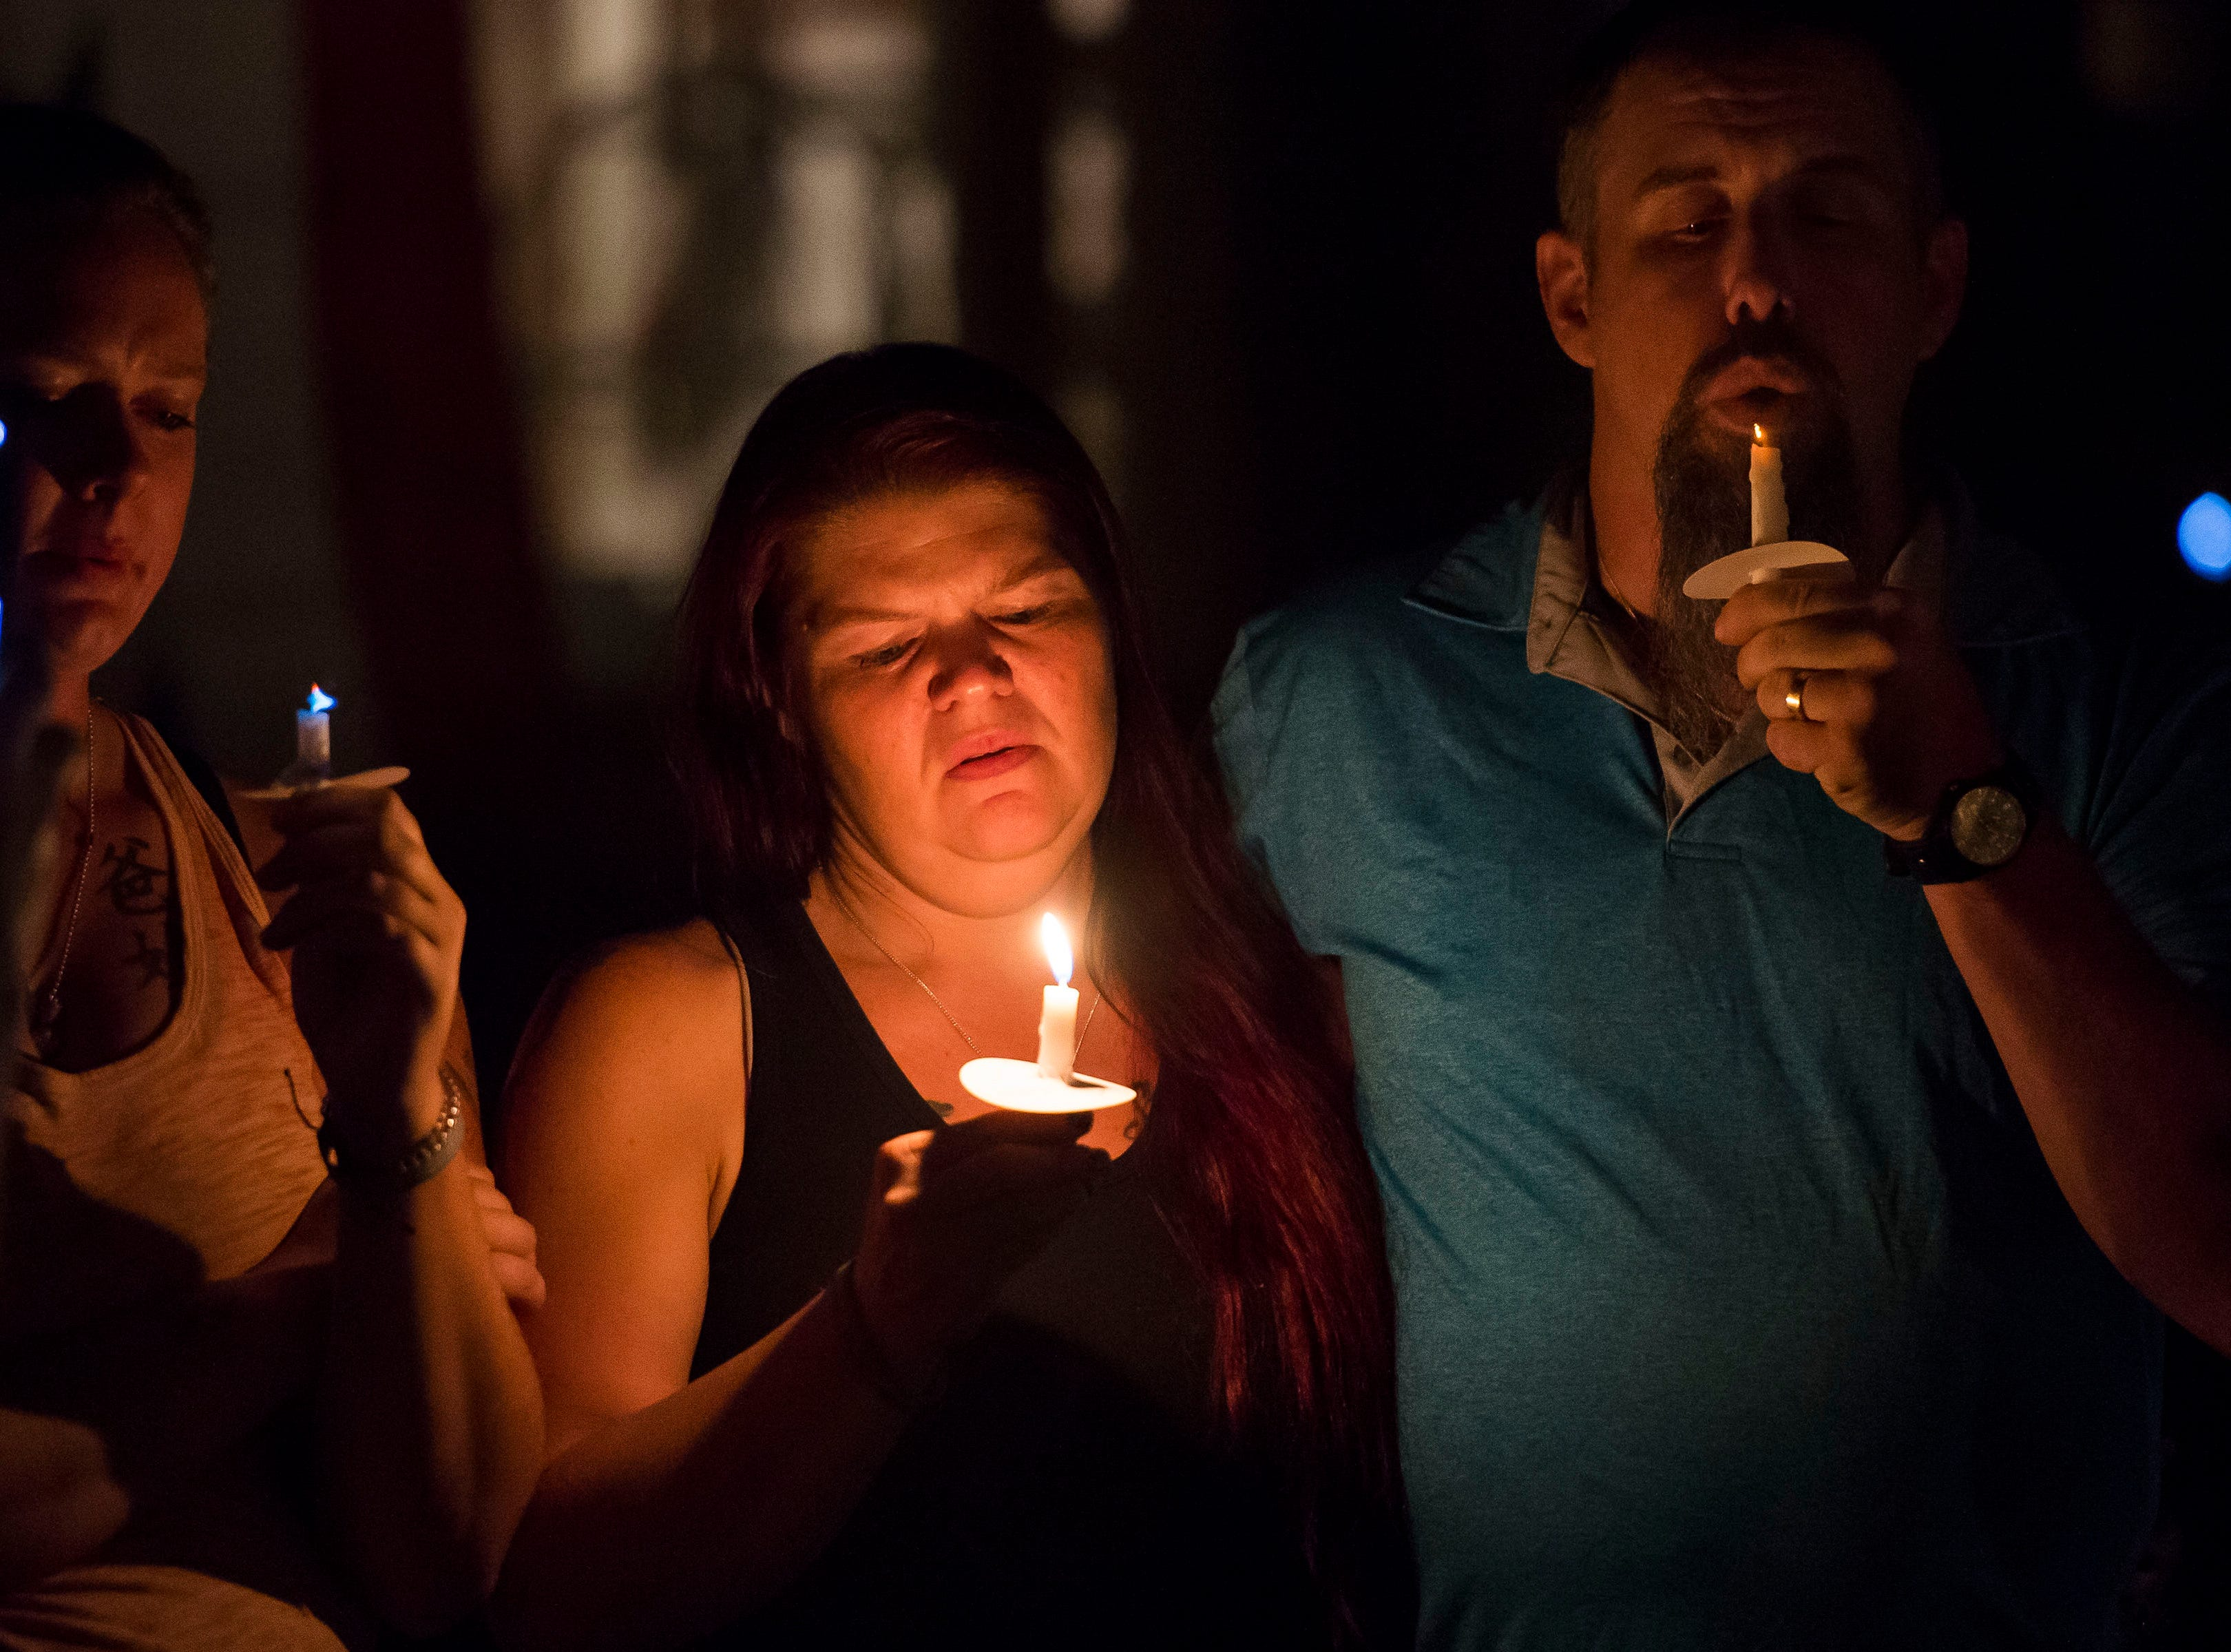 Penny Whaley, center, pauses before blowing out a candle at the end of a vigil for her son Aric Whaley, a 17 year old who was fatally shot at his home early Tuesday morning, Sept. 4, as seen on Saturday, Sept. 15, 2018, in Loveland, Colo. Gabriel Jesus Romero Ventura, 18, was arrested by Loveland police less than a mile from the residence on suspicion of manslaughter, first-degree assault and prohibited use of a weapon.